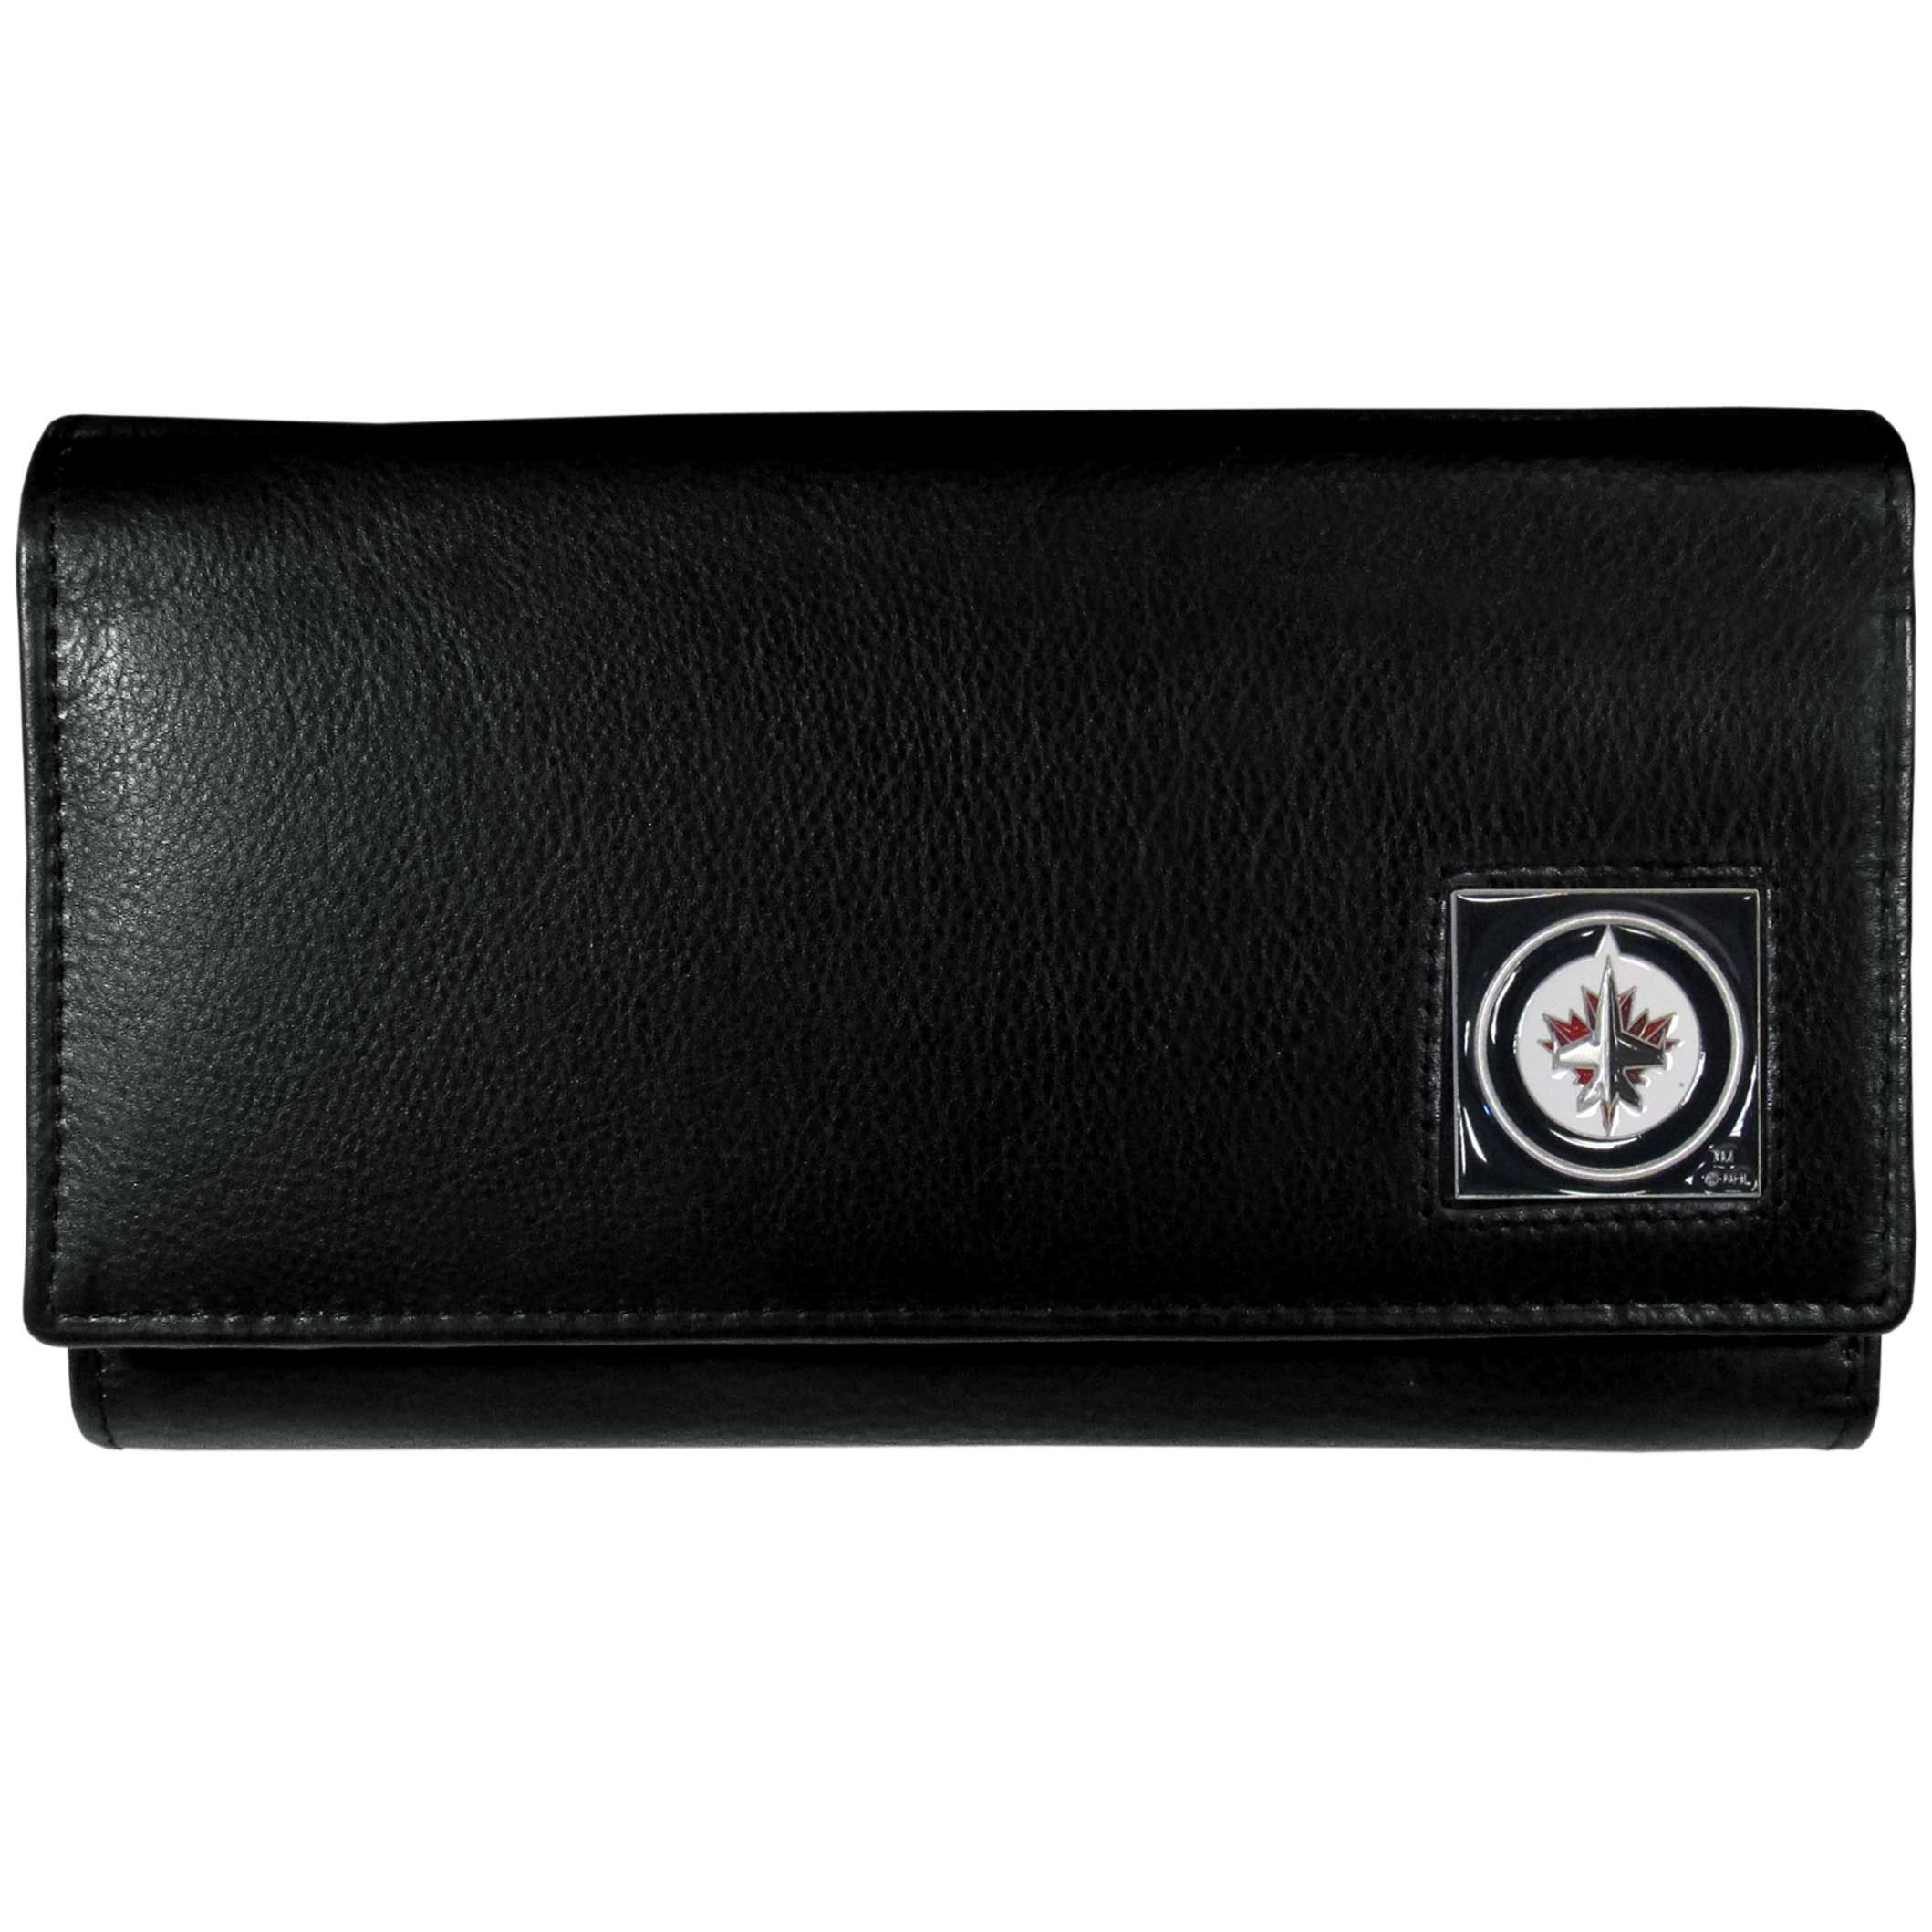 Winnipeg Jets™ Leather Women's Wallet - This genuine leather women's pocketbook features 9 credit card slots, a windowed ID slot, spacious front pocket, inner pocket and zippered coin pocket. The front of the pocketbook has a hand painted metal square with the Winnipeg Jets™ primary logo.